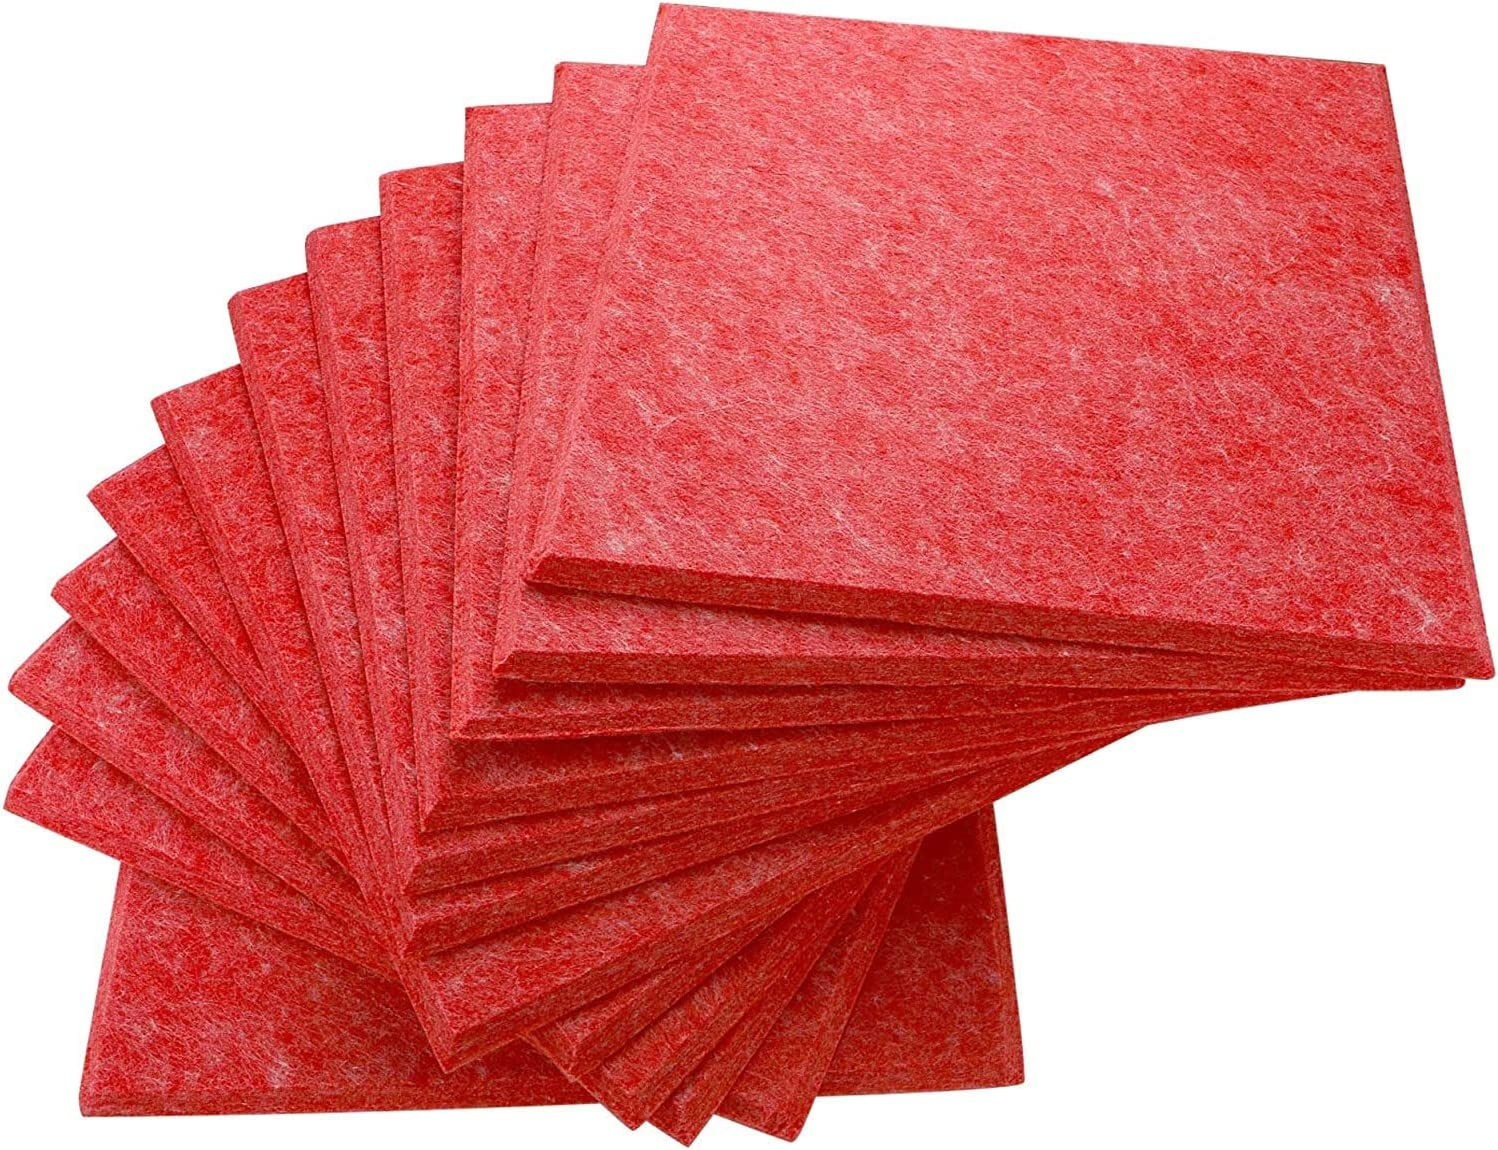 12 Pack Set Acoustic Absorption Panel, 12 X 12 X 0.4 Inches Red Acoustic Soundproofing Insulation Panel Bevled Edge Tiles, Acoustic Treatment Used in Home & Offices